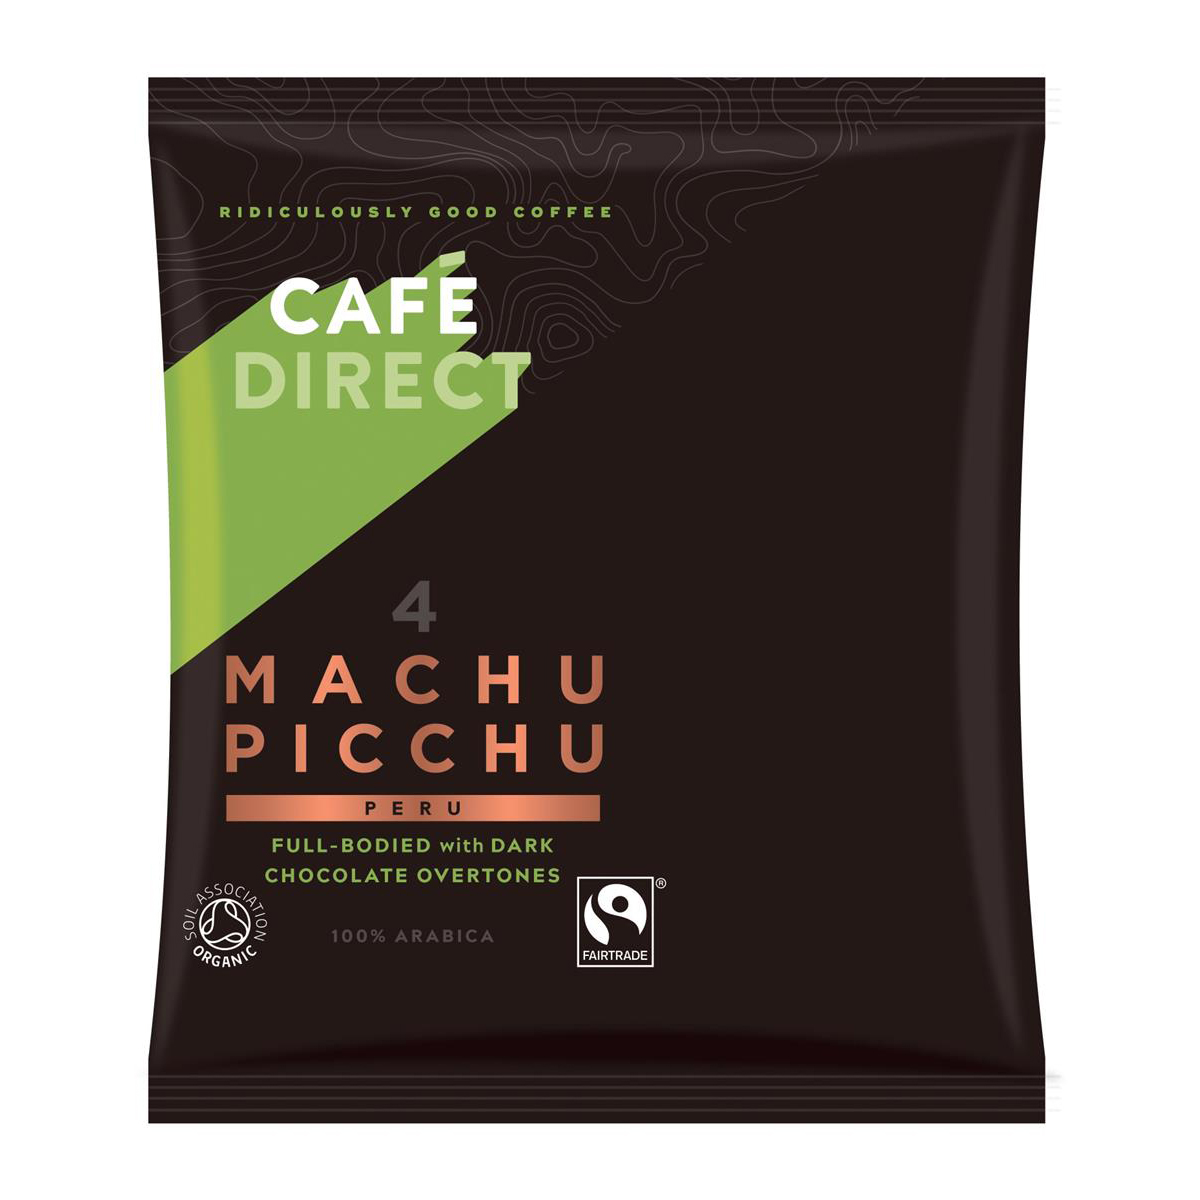 Coffee Cafe Direct Machu Picchu Peru Filter Coffee 60g Sachet Ref FCR1011 Pack 45